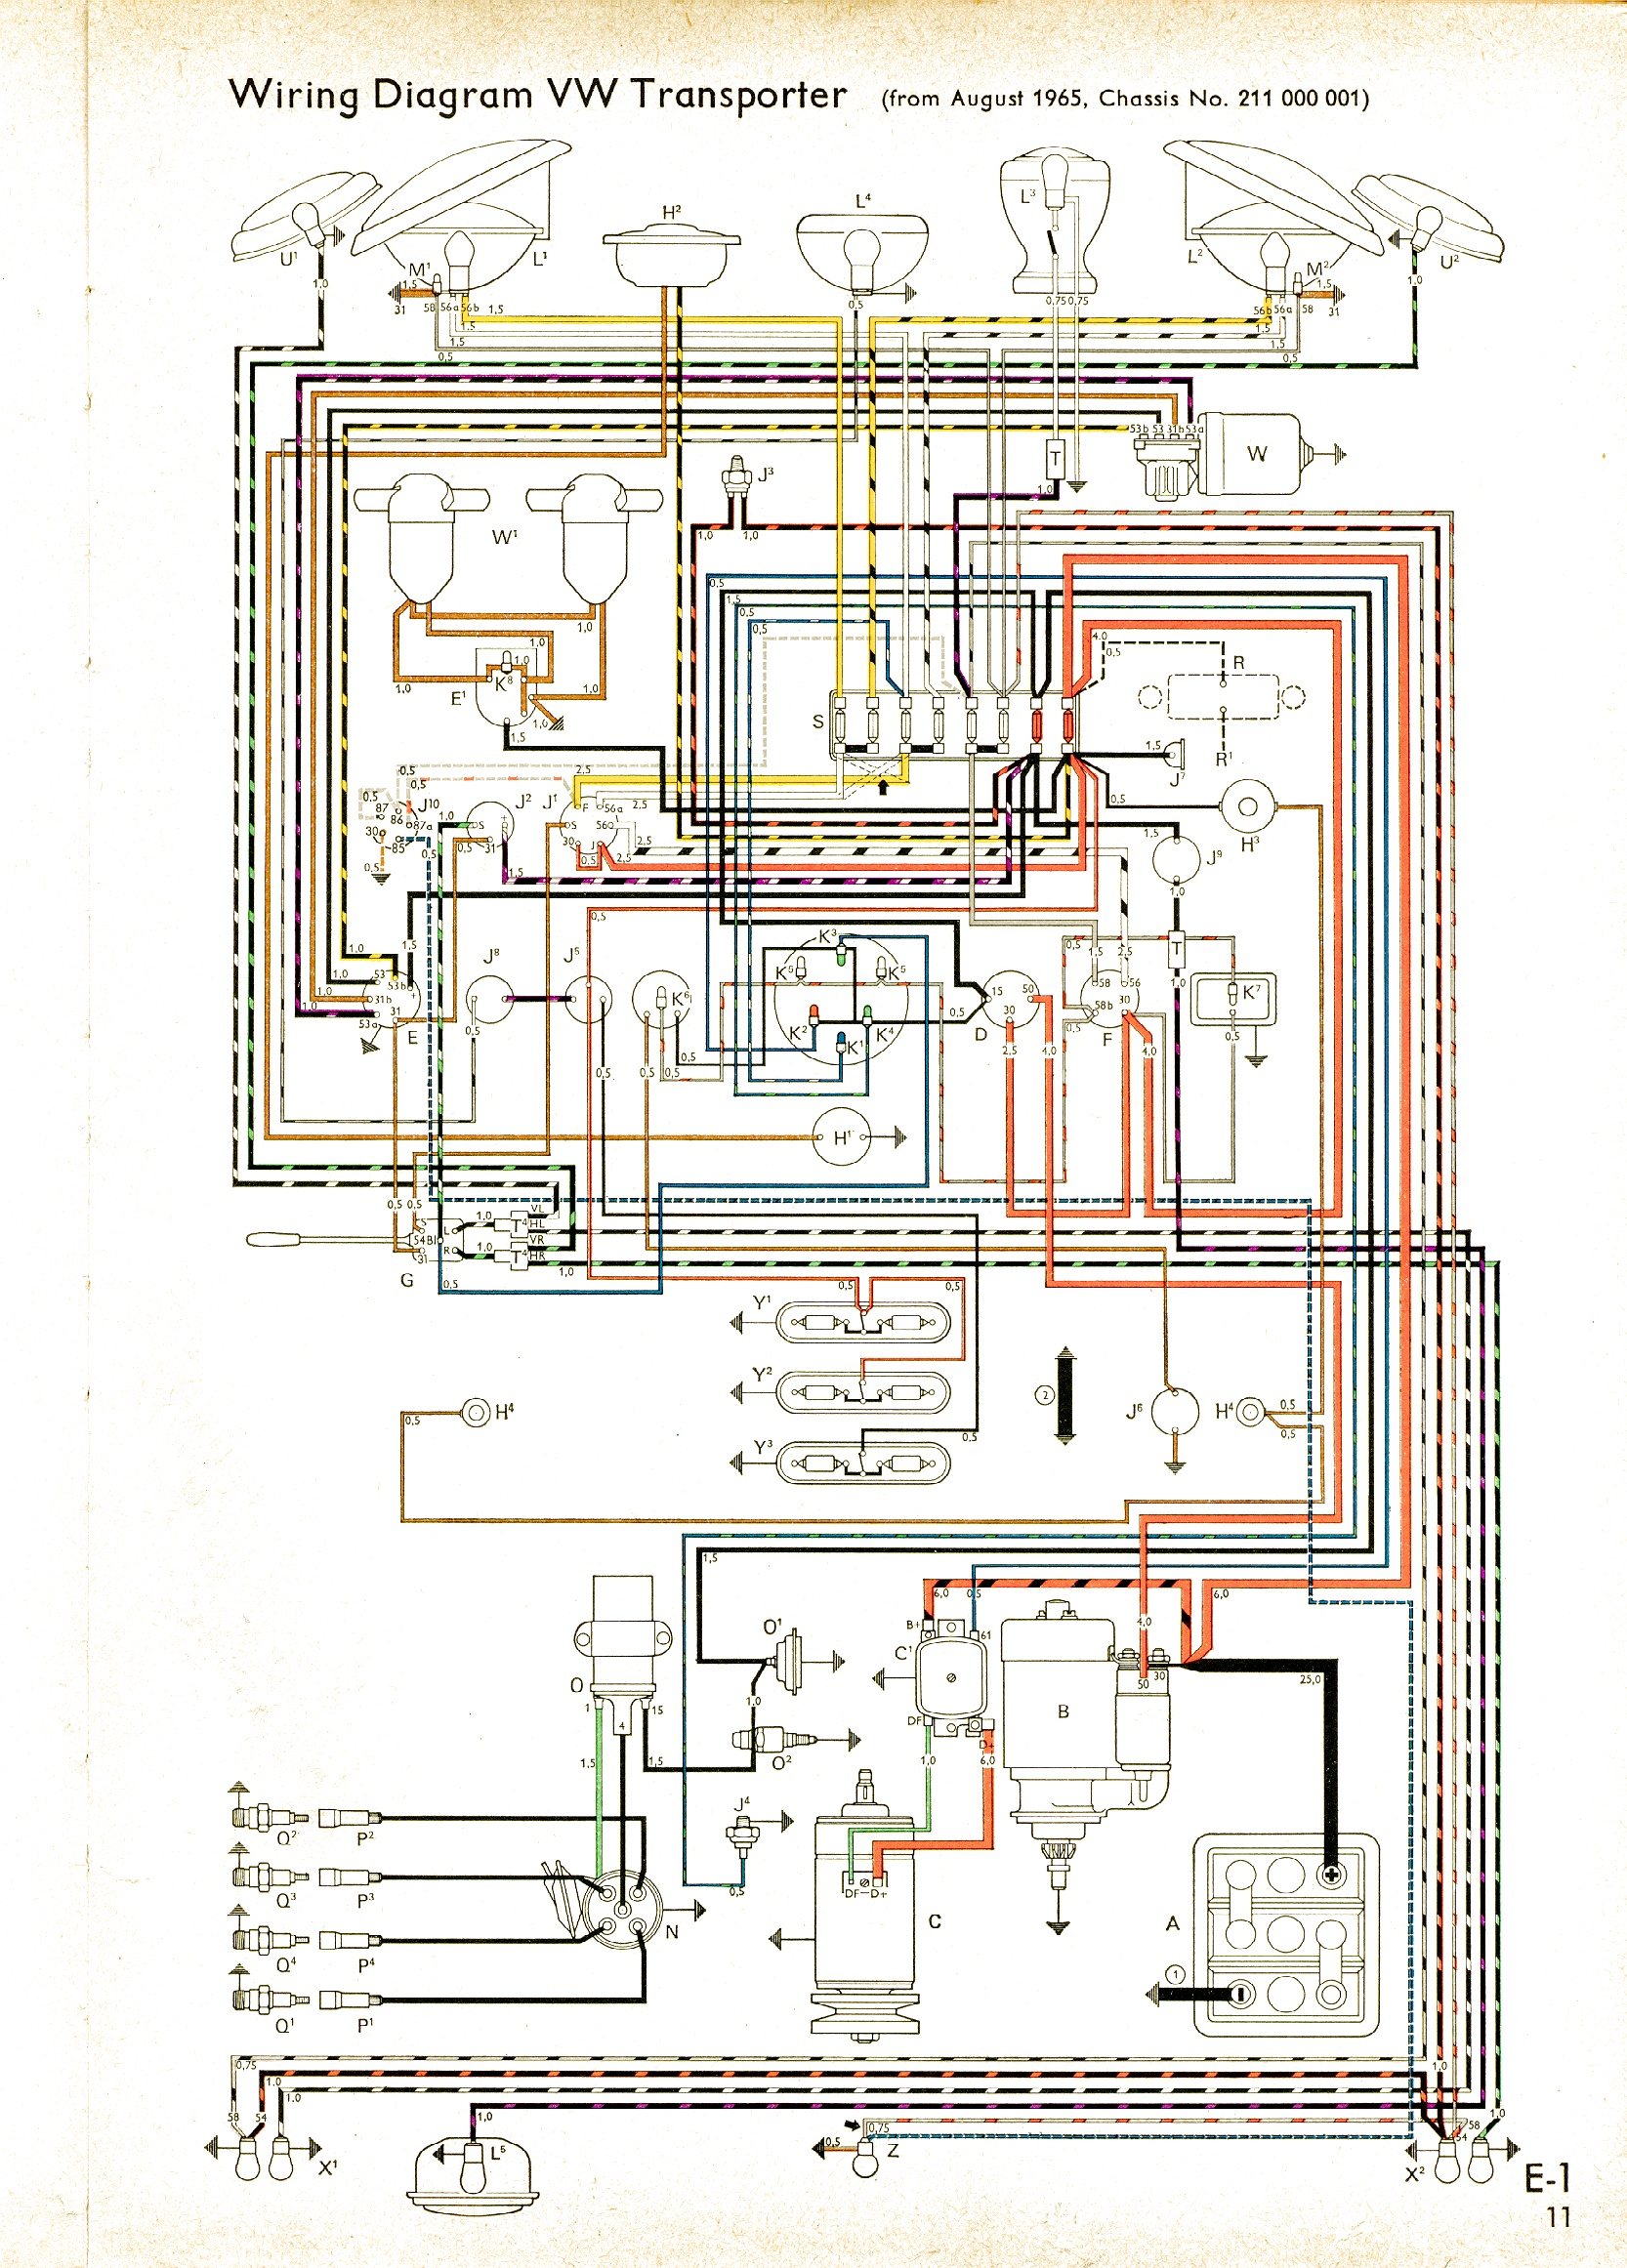 Vw Bus Fuse Diagram Trusted Wiring Diagrams Avital Remote Start Hecho Rh Volkspower Nl 1970 Box 2012 Passat